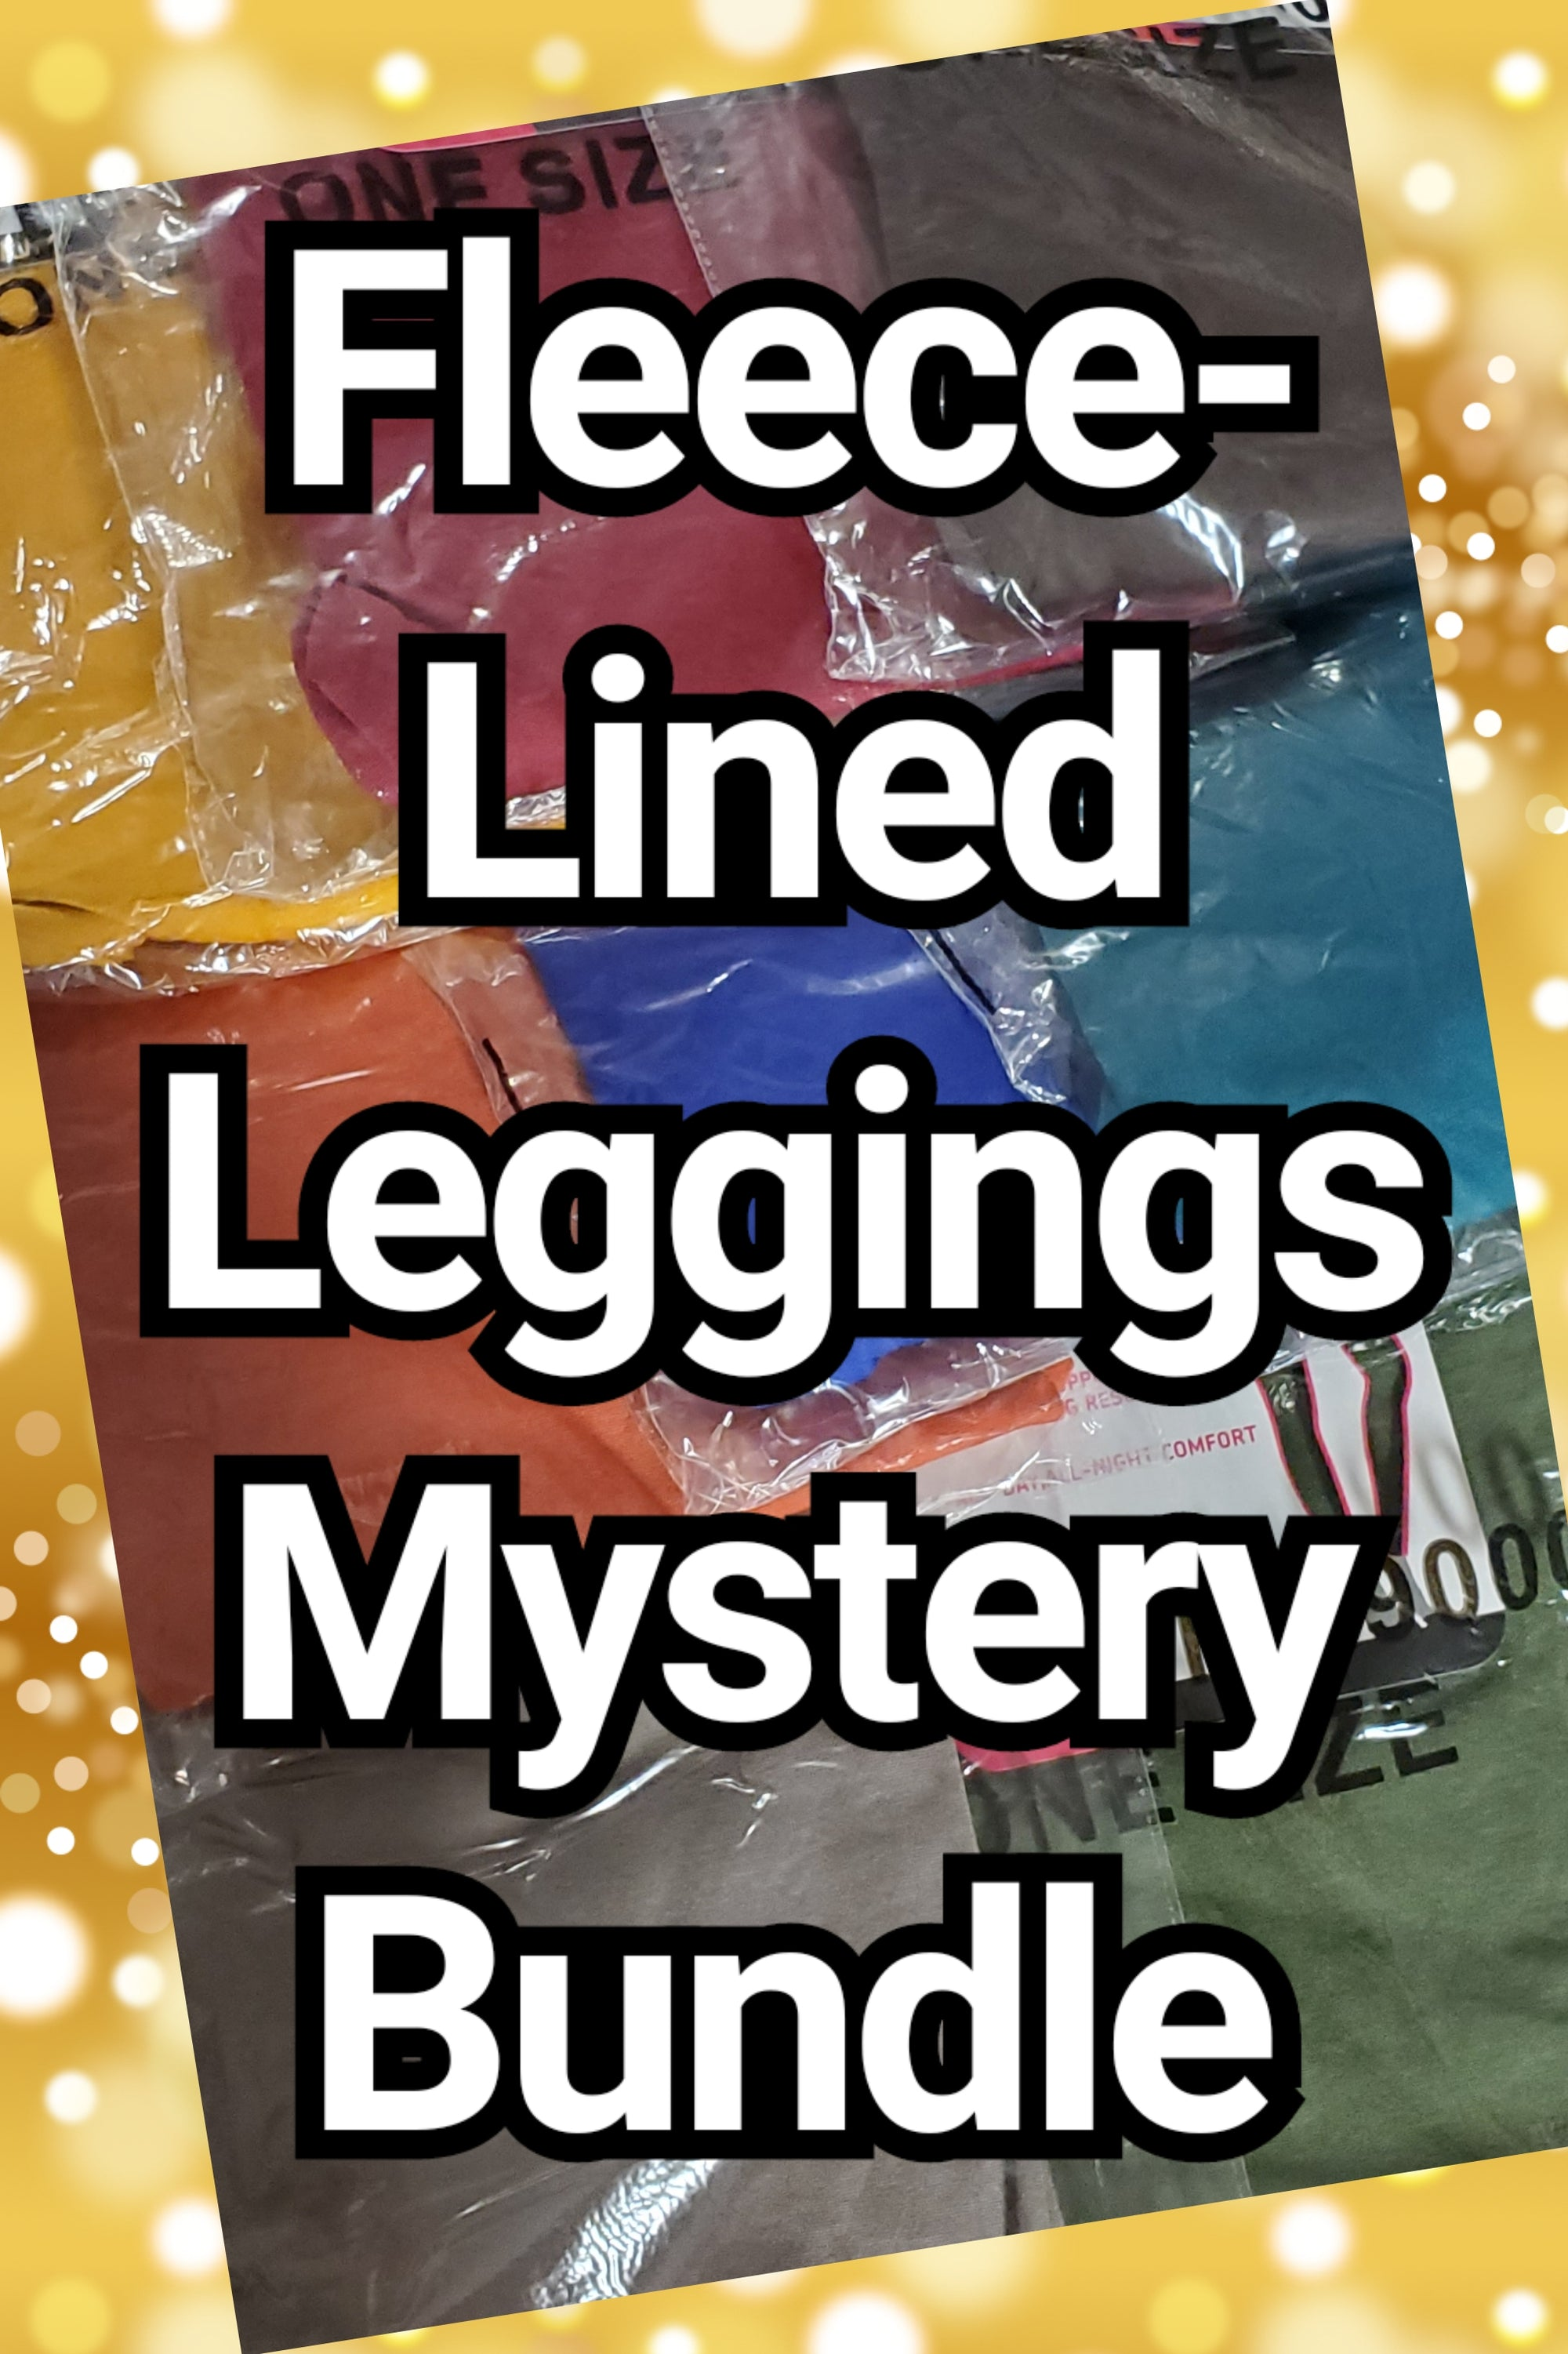 *MYSTERY BUNDLE 6pk FLEECE-LINED Nylon Leggings